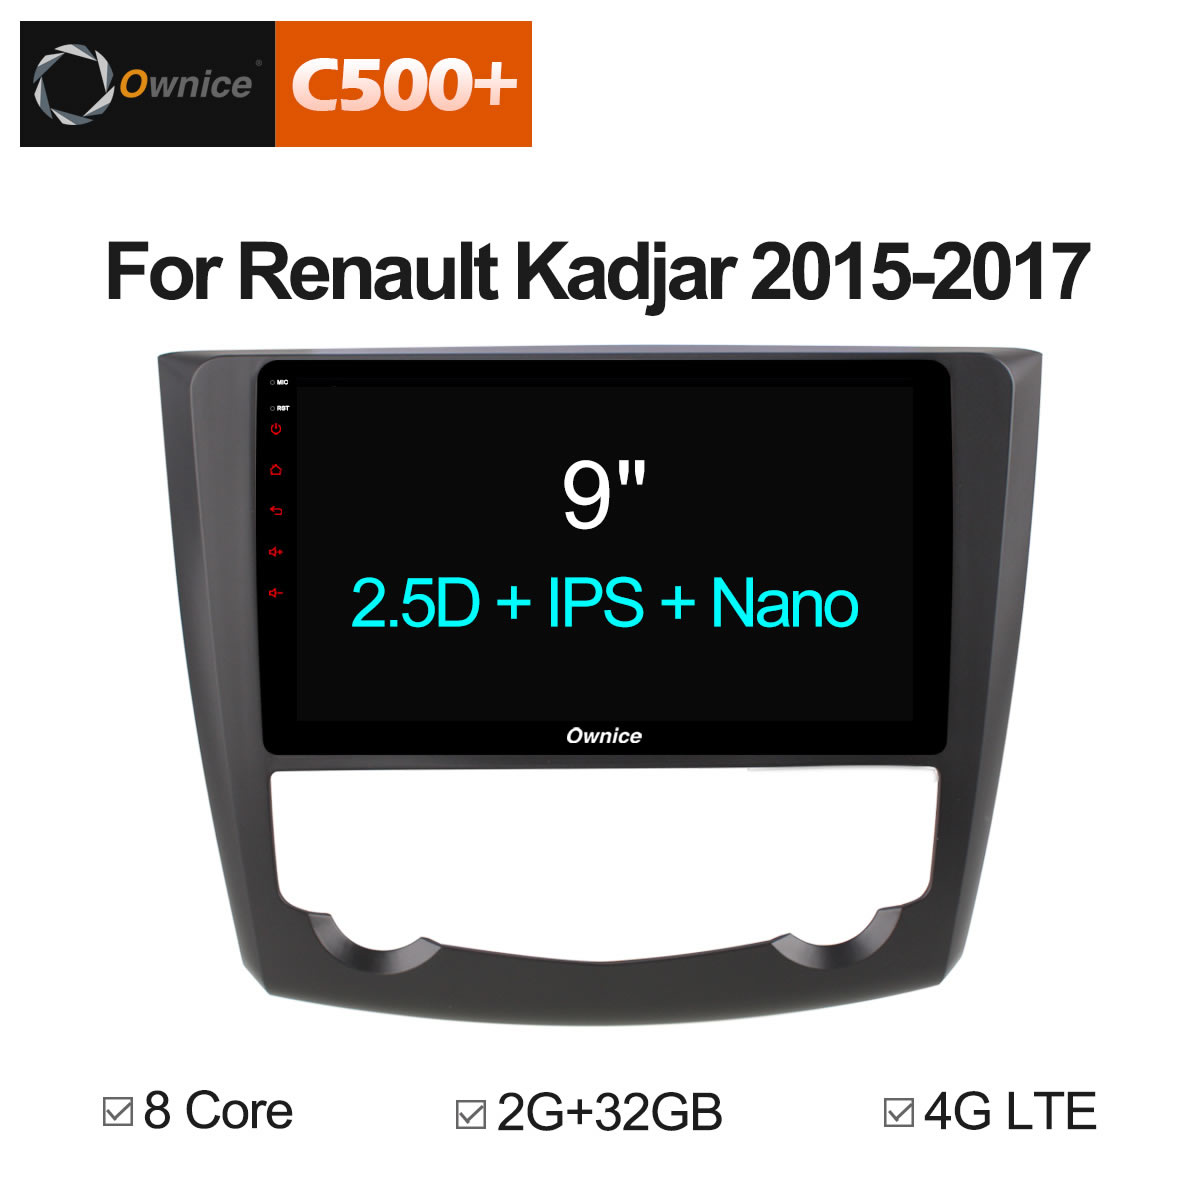 Ownice C500+ G10 RAM 2GB Android 8.1 for Renault Kadjar 2015 2016 - 2017 Car DVD Player Navigation GPS Radio 4G LTE DAB+ DVR special dvr without battery for ownice c500 car dvd and the dvd manufacture date must after 10th of april 2017 included 10th